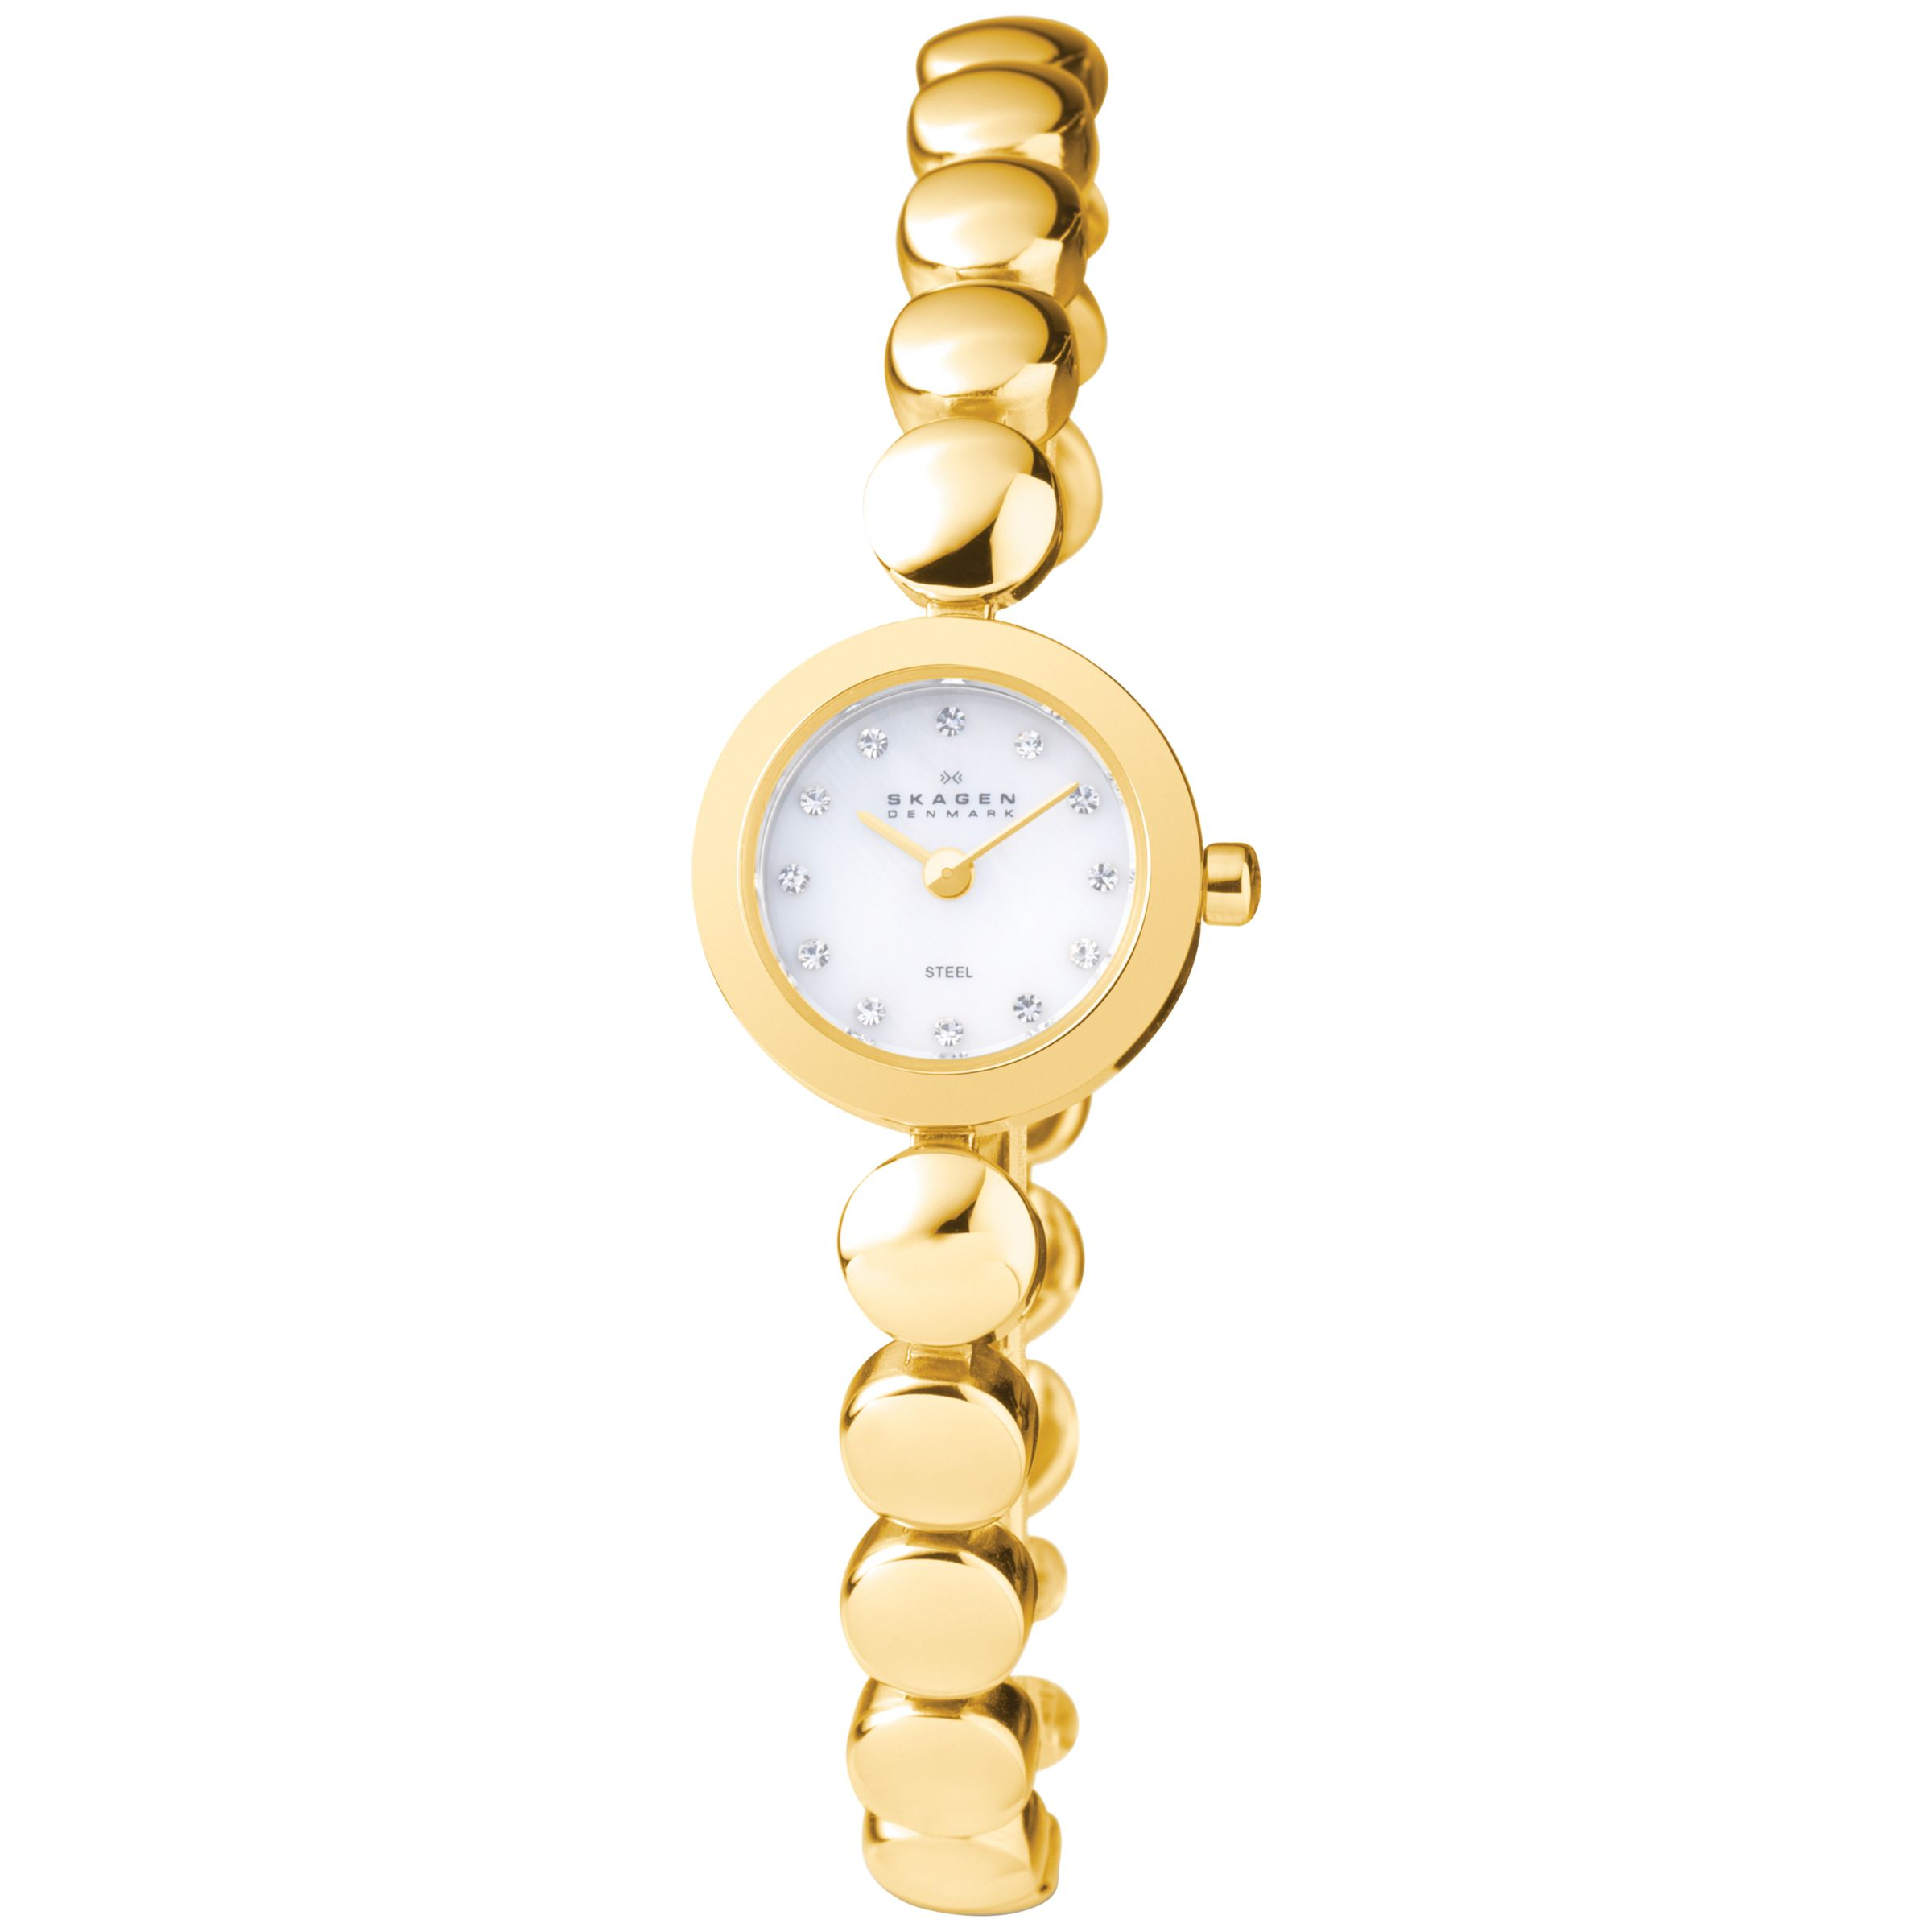 chain false rose zoom petite lauren upscale steel watch in ralph bezel stirrup shop with diamonds product link gold faubourg diamond subsampling crop watches hermes set scale